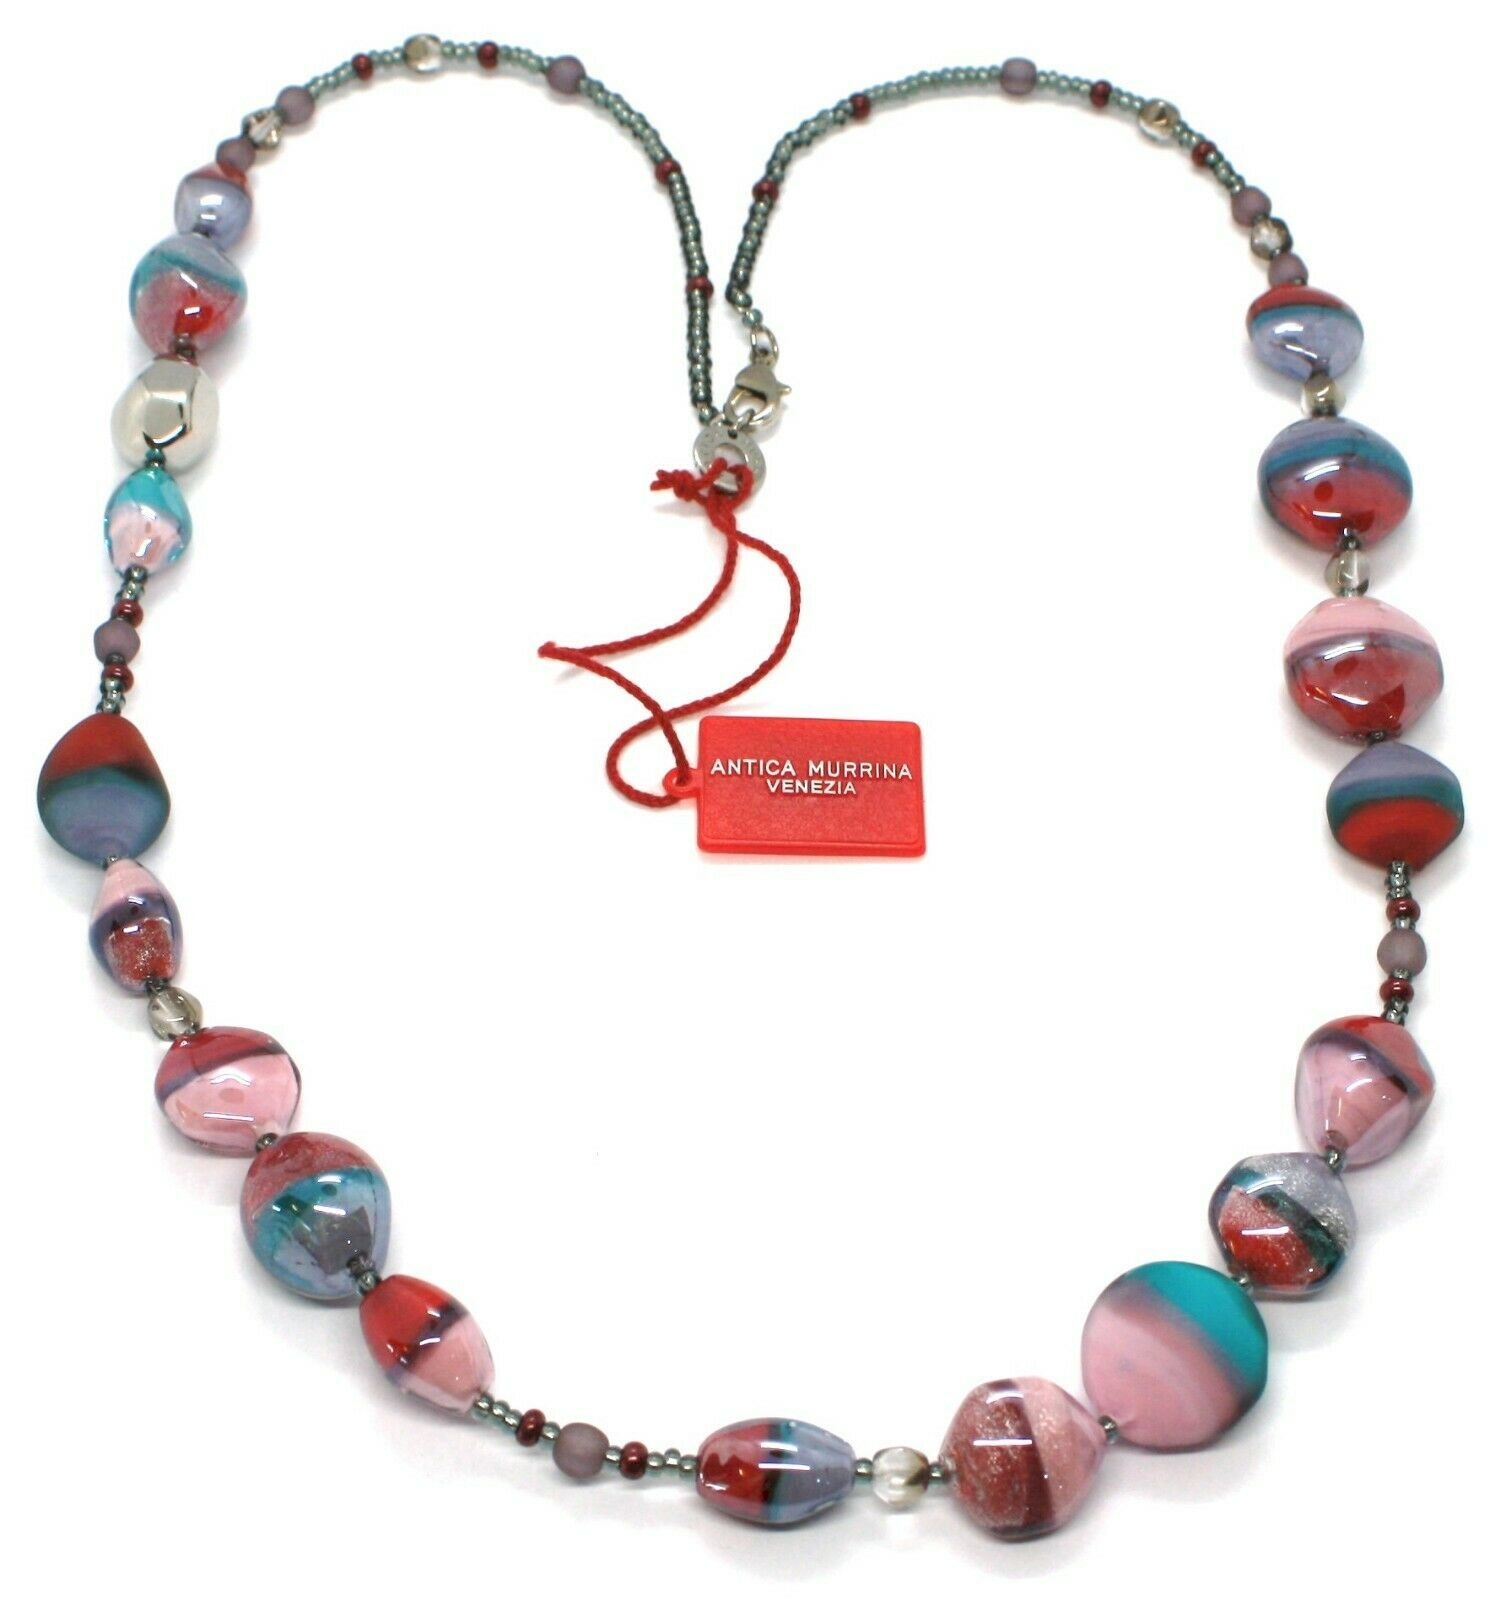 Necklace Antique Murrina, CO979A04, 80 cm, Red Light Blue Pink, Effect Sand